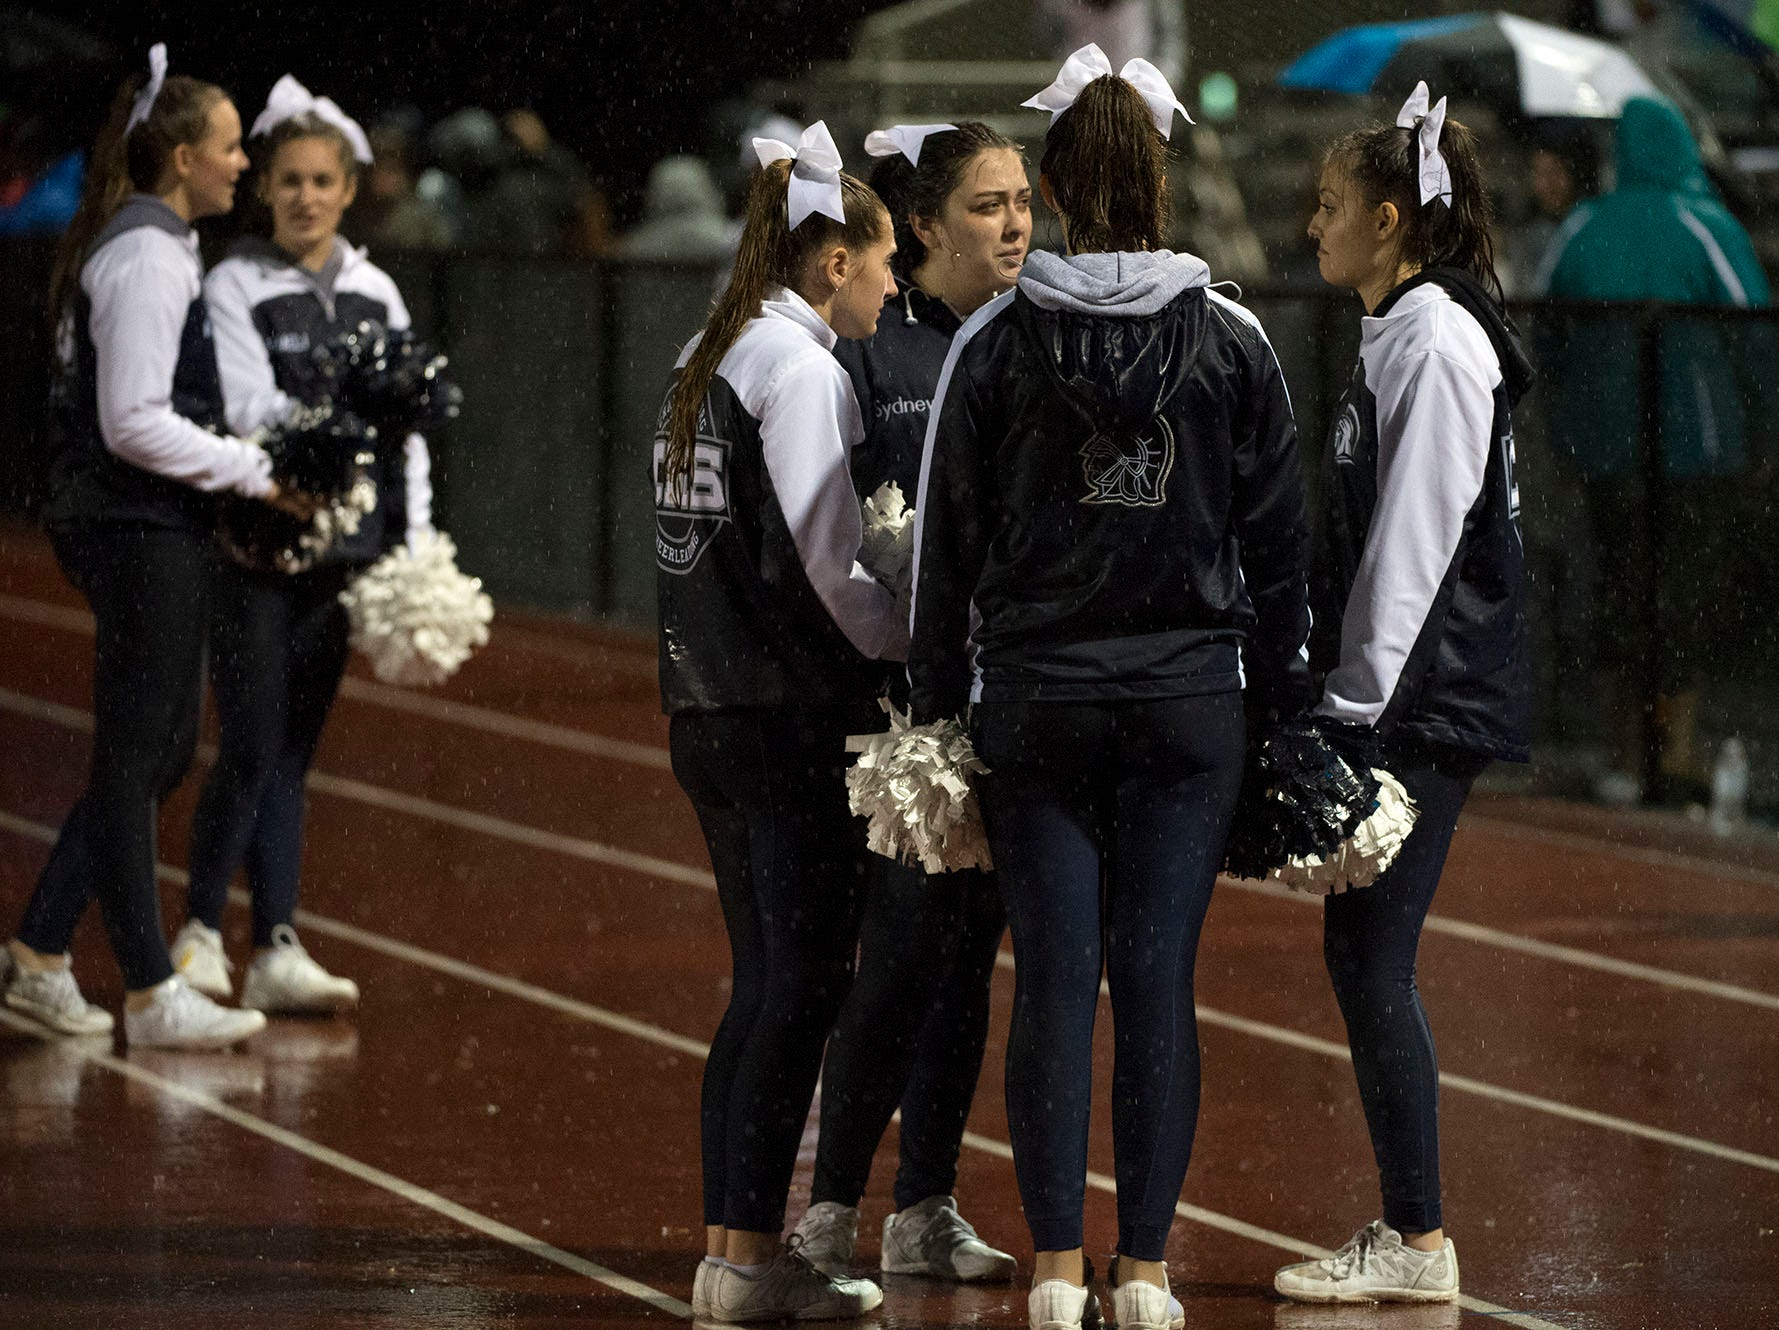 Trojan cheerleaders work in the rain. Chambersburg Trojans dropped a close game 20-17 to Manheim Township Blue Streaks in the rain during PIAA District 3 playoff football on Friday, Nov. 2, 2018.